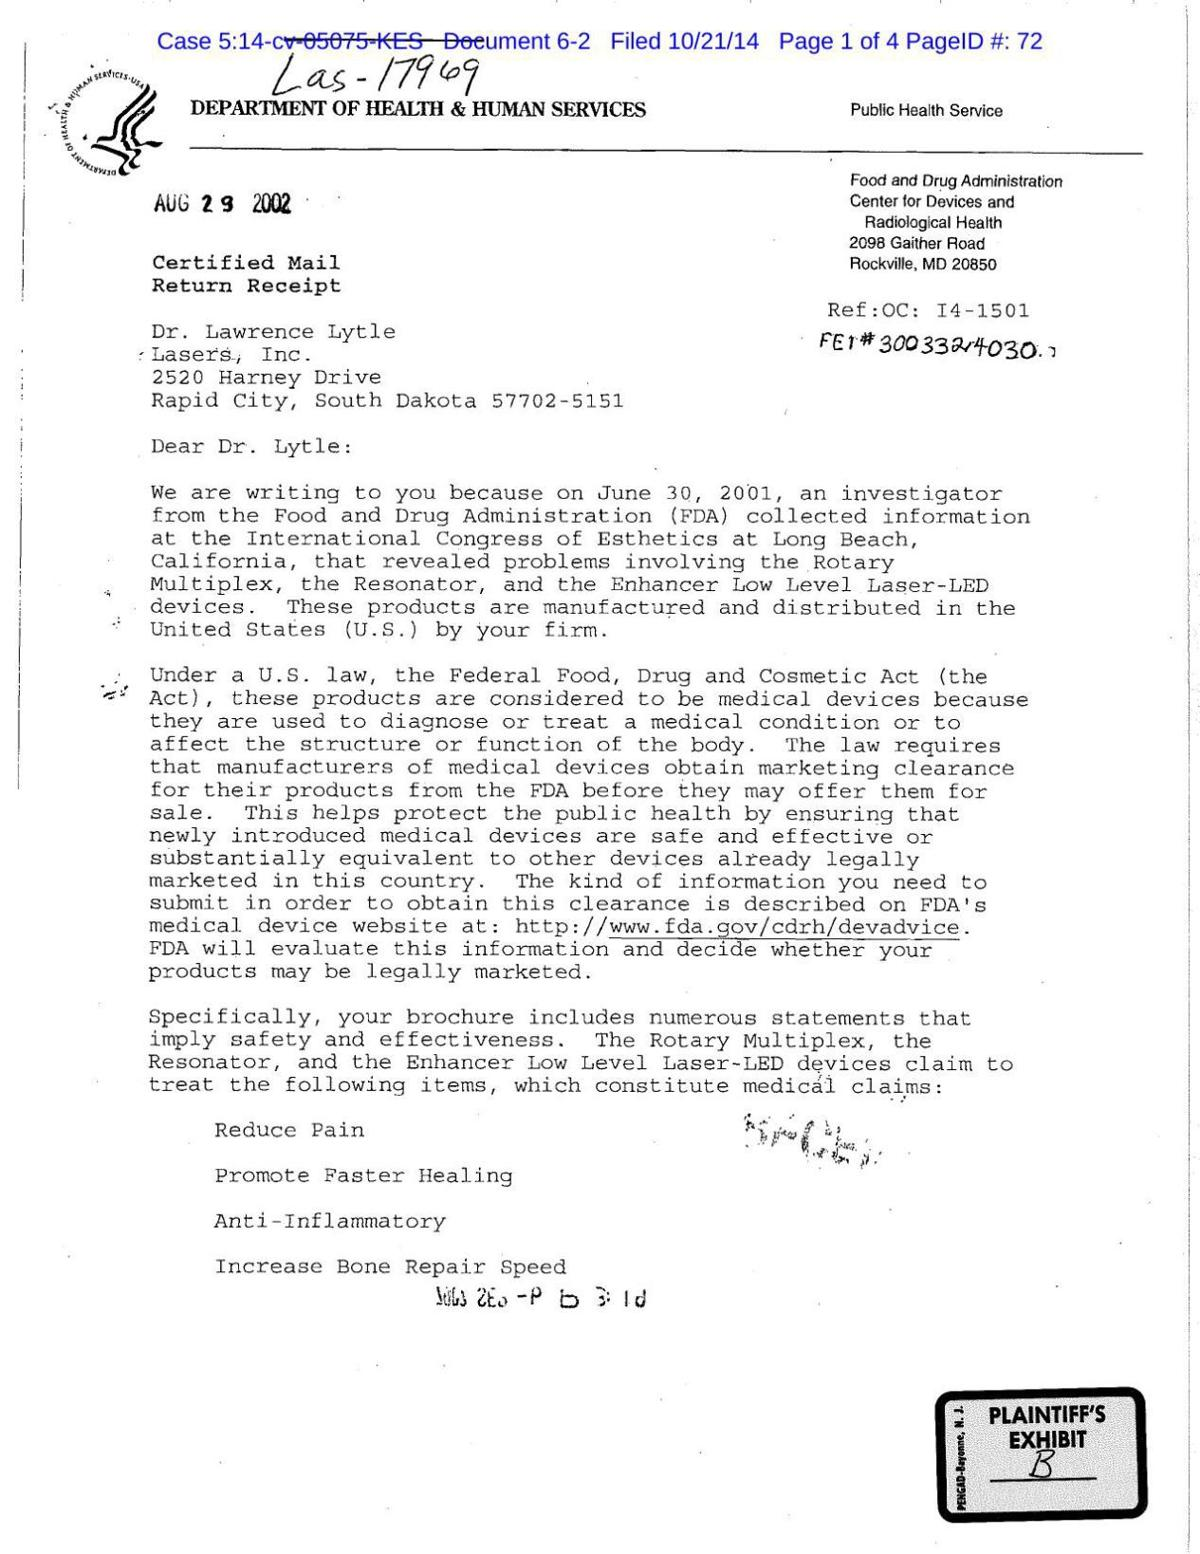 2002 Fda Warning Letter To Larry Lytle Rapidcityjournal